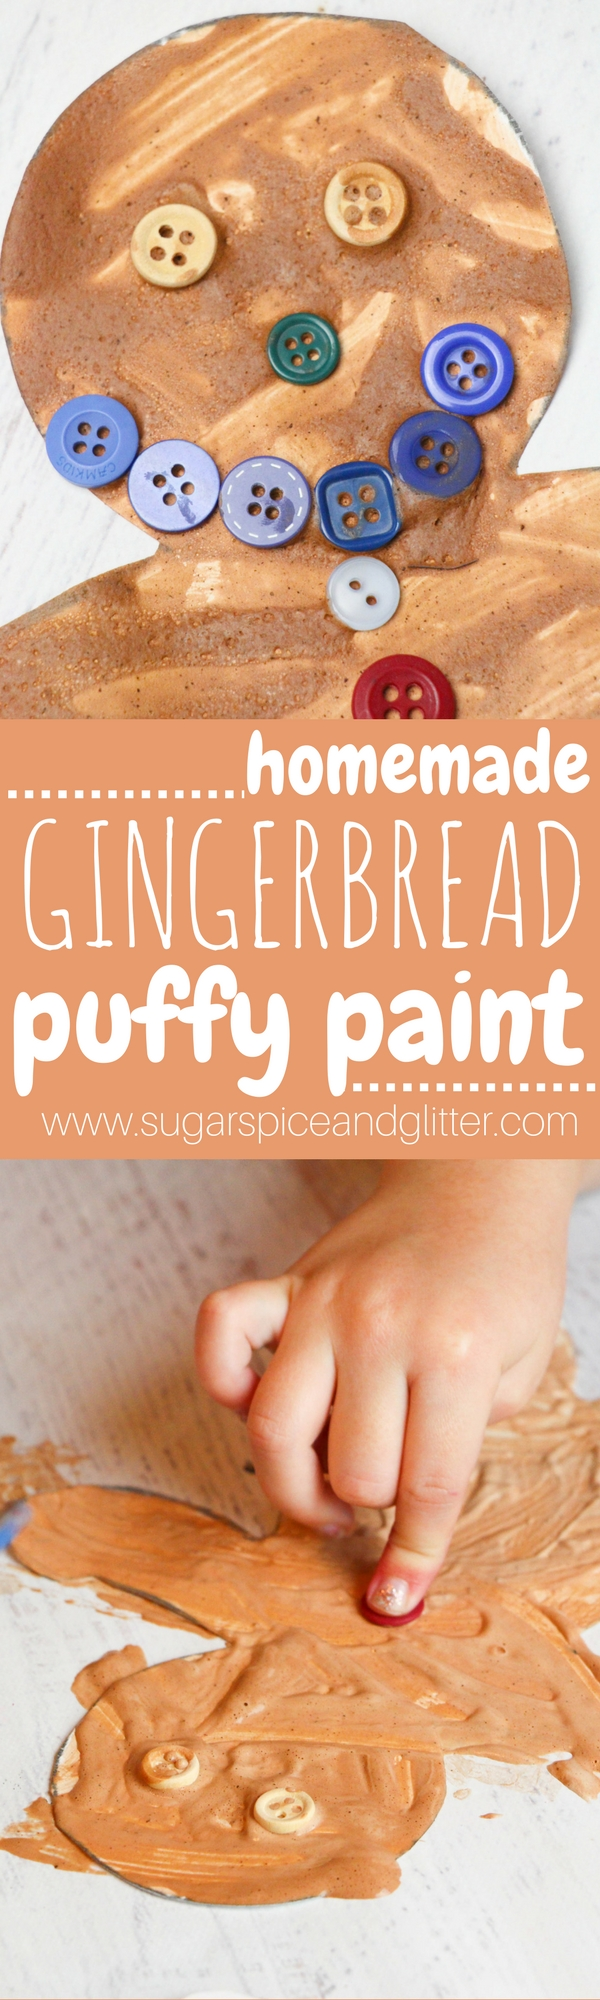 Gingerbread Puffy Paint - a deliciously scented homemade puffy paint for kids. Turn art into a multi-sensory experience - color, texture and scent. Use this paint to make beautiful holiday art, cards, puffy gingerbread houses and more!